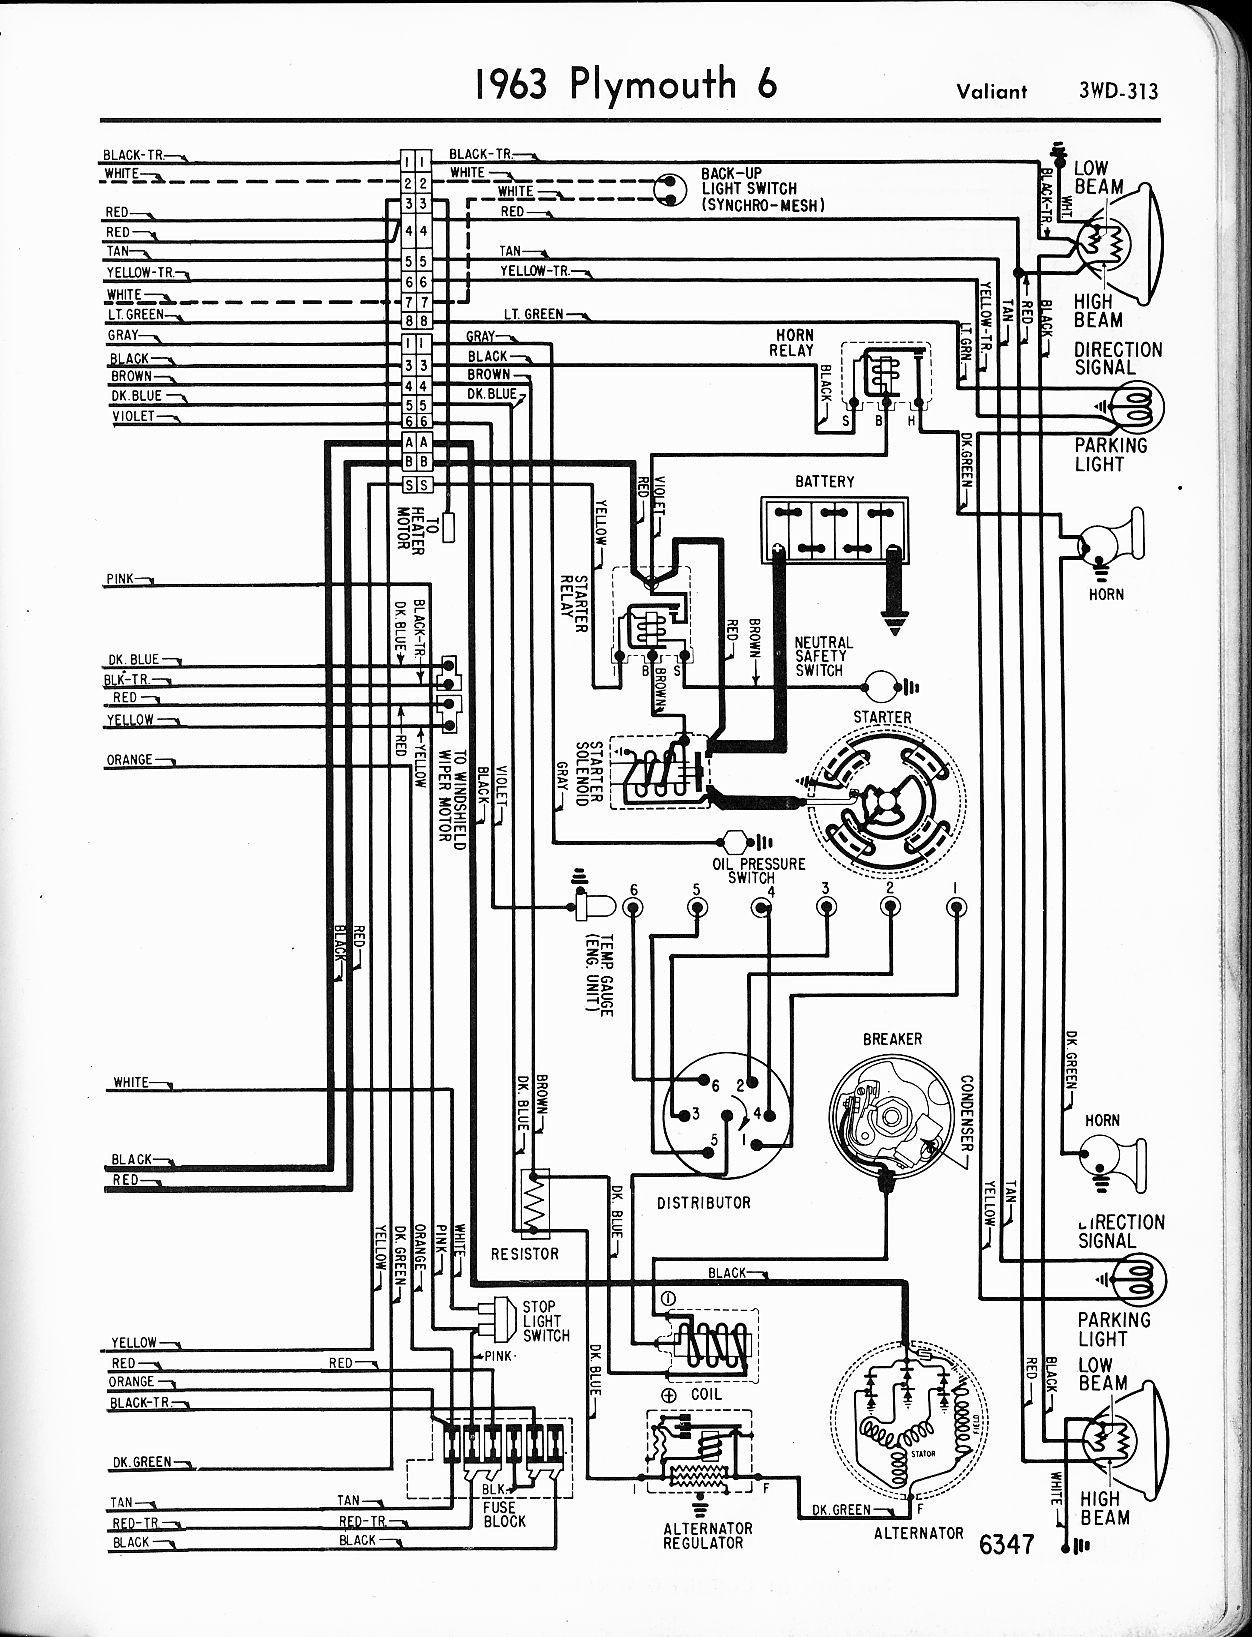 New House Wiring Diagram South Africa Diagram